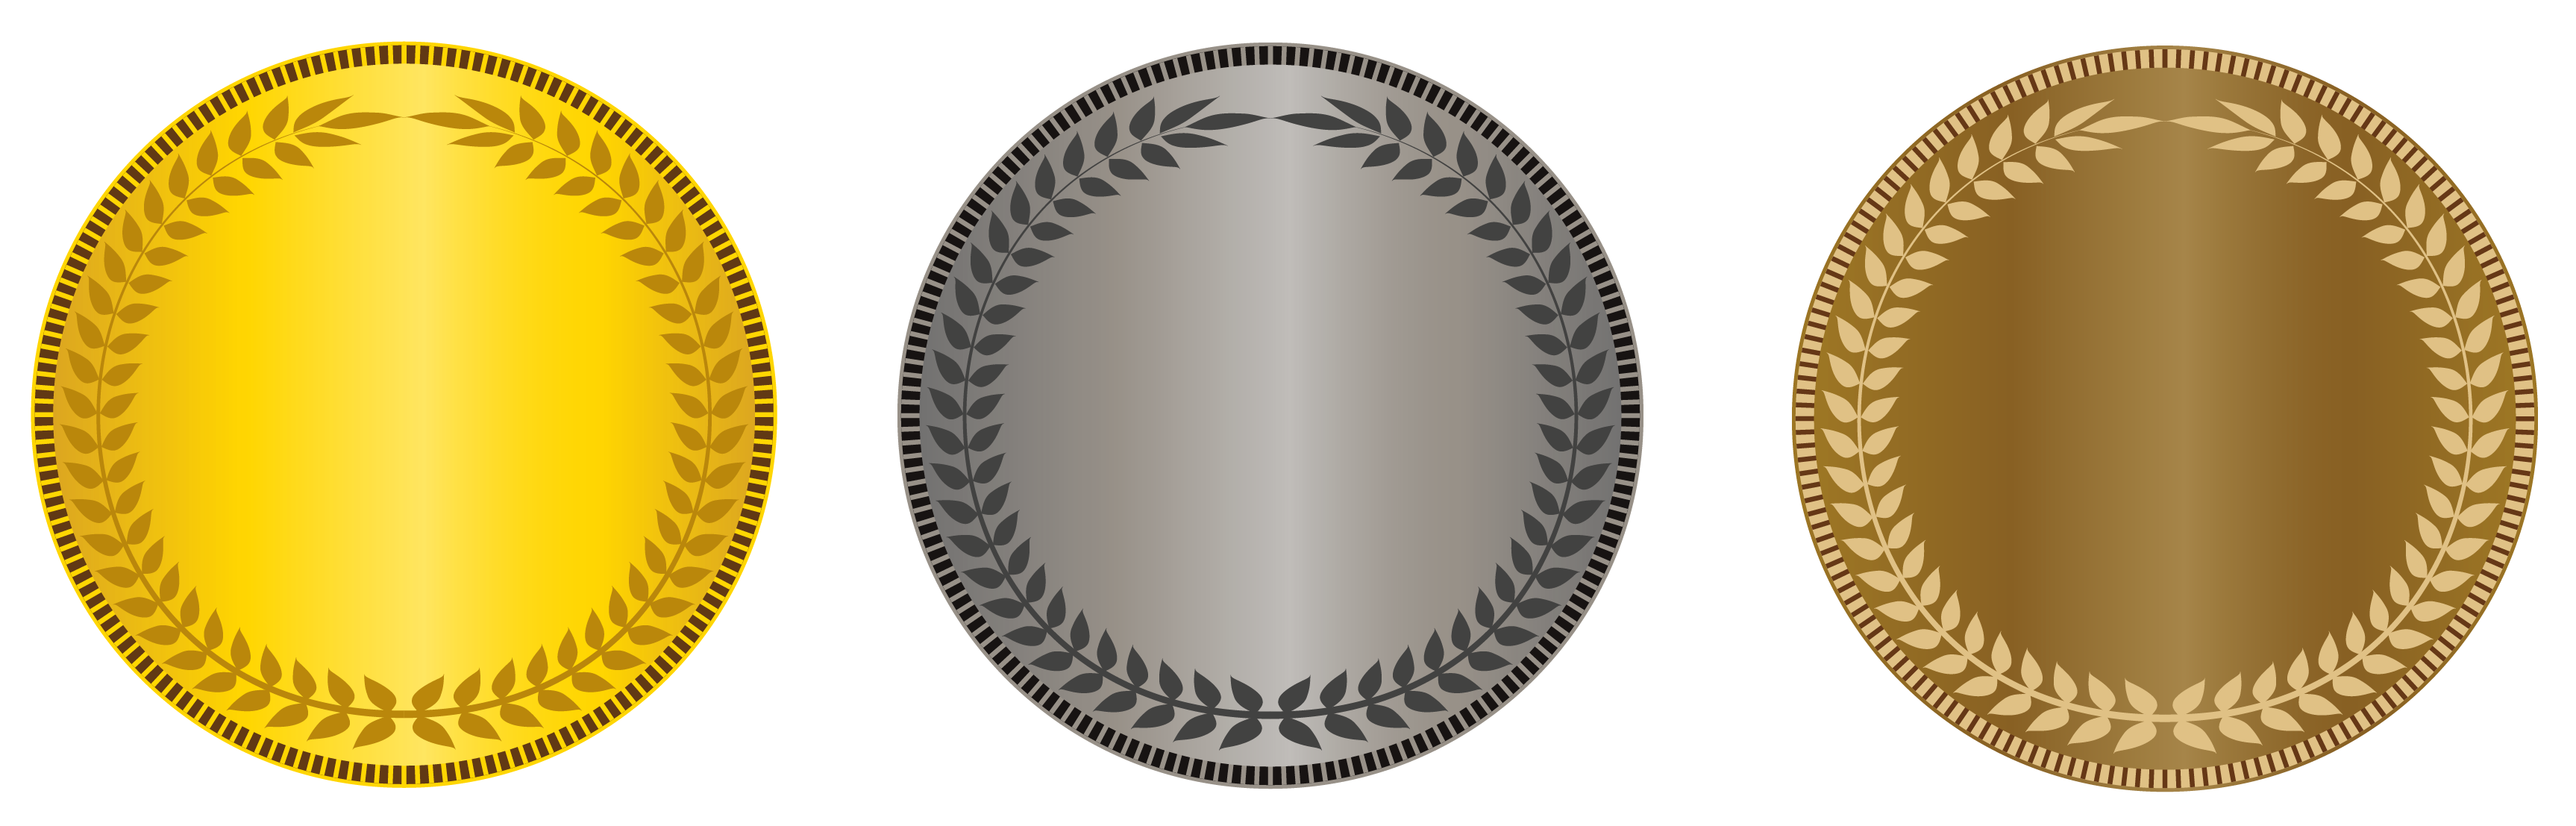 Gold silver bronze medal clipart.